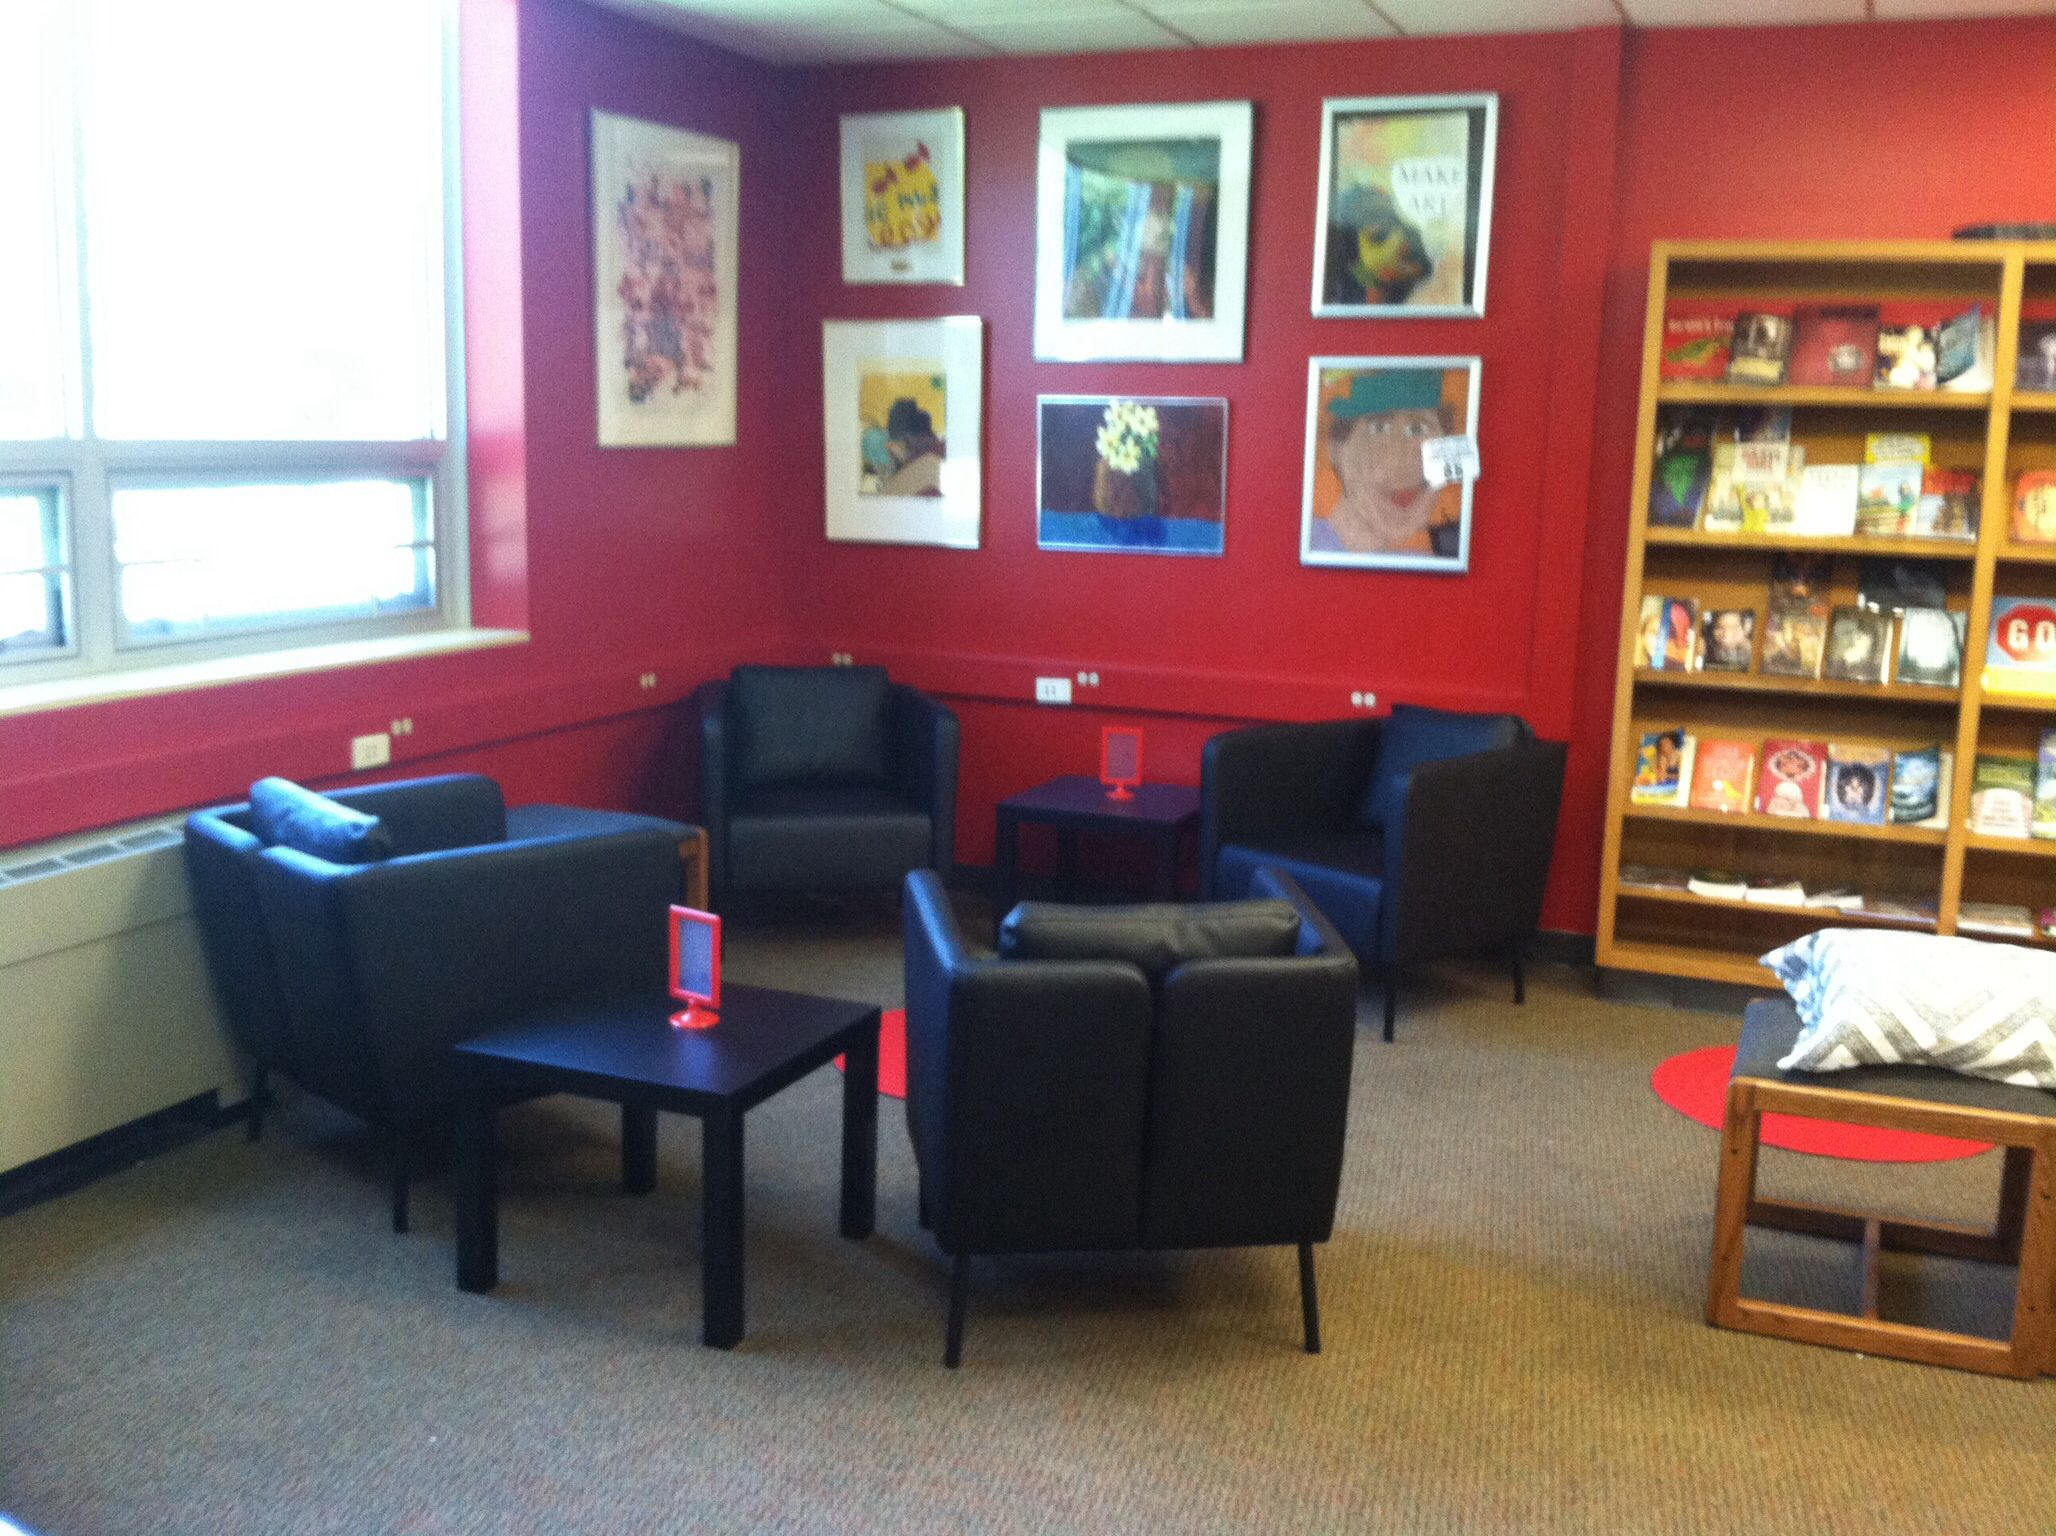 Attirant Ikea Furniture In The Reading Corner At South East Junior High Library, Iowa  City.